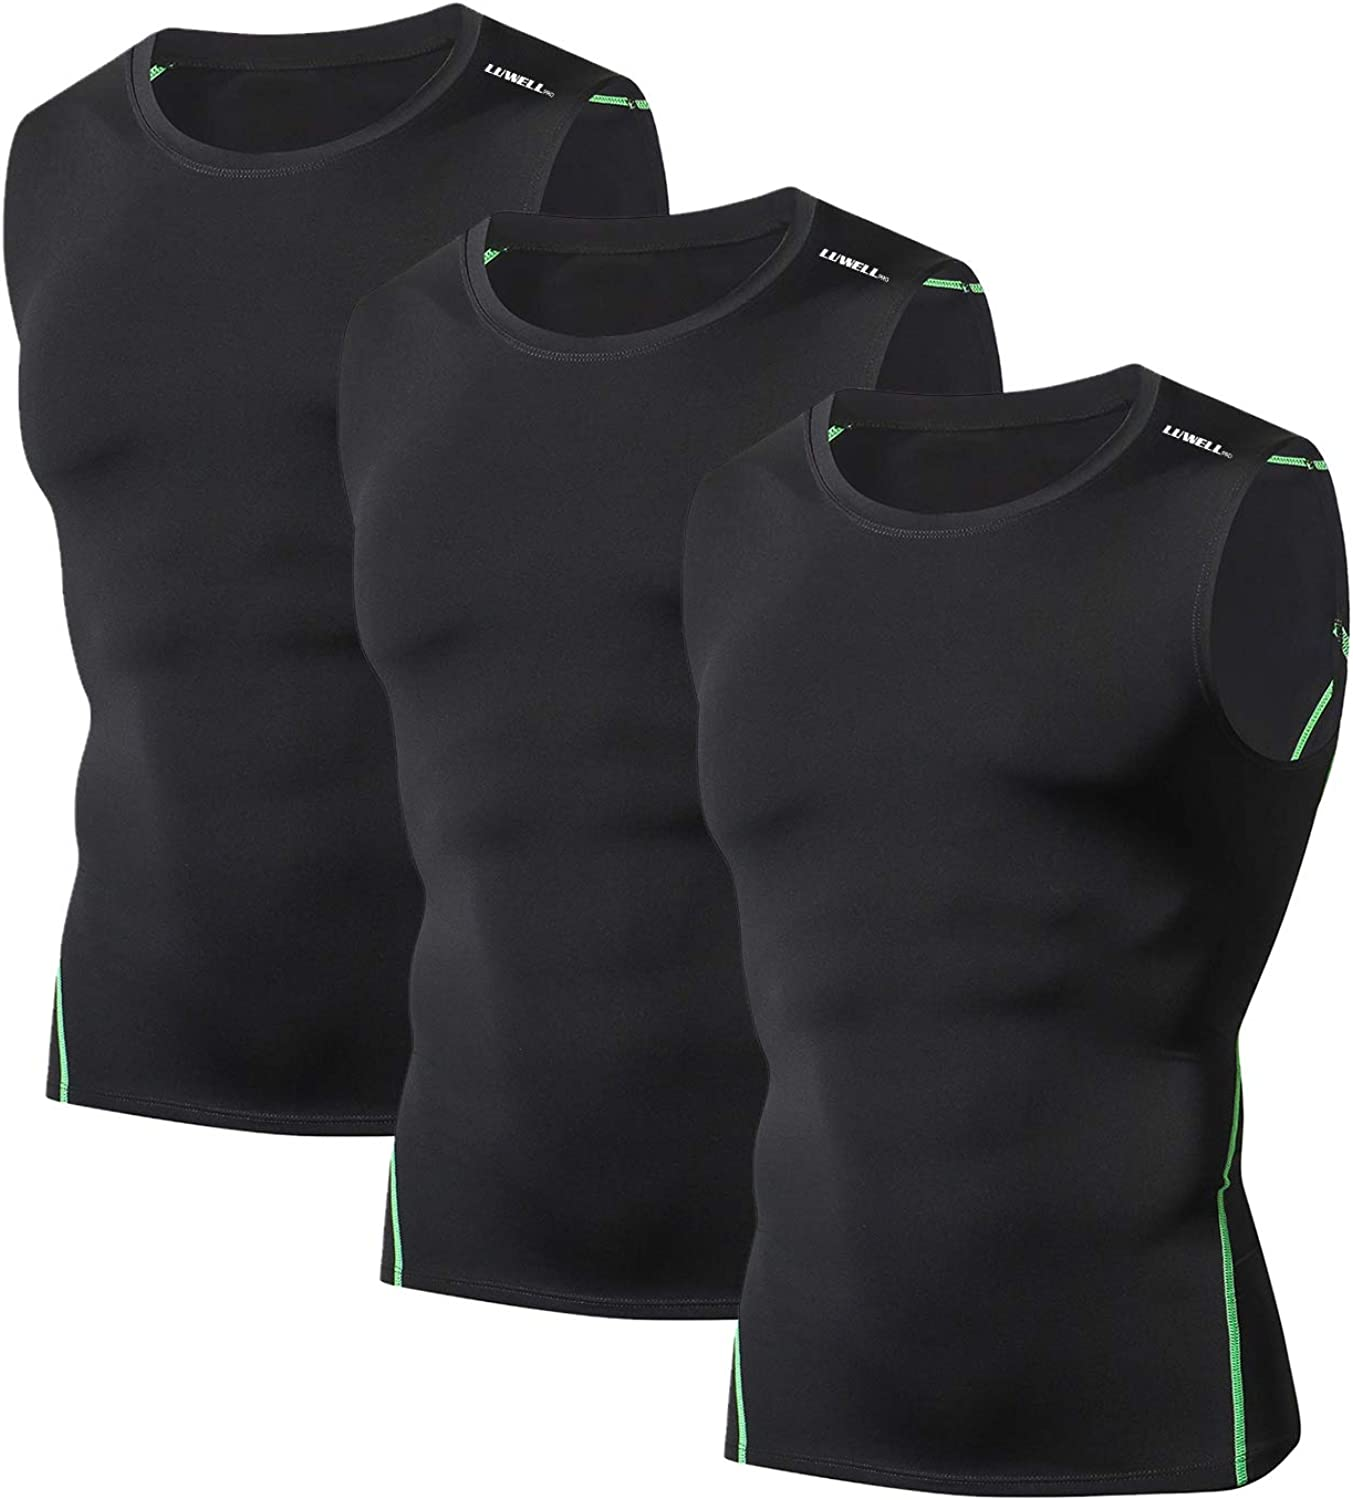 LUWELL PRO Mens 3 Pack Tank Tops Compression Sleeveless Shirts Baselayers Muscle Shirts for Running,Workout,Gym,Training